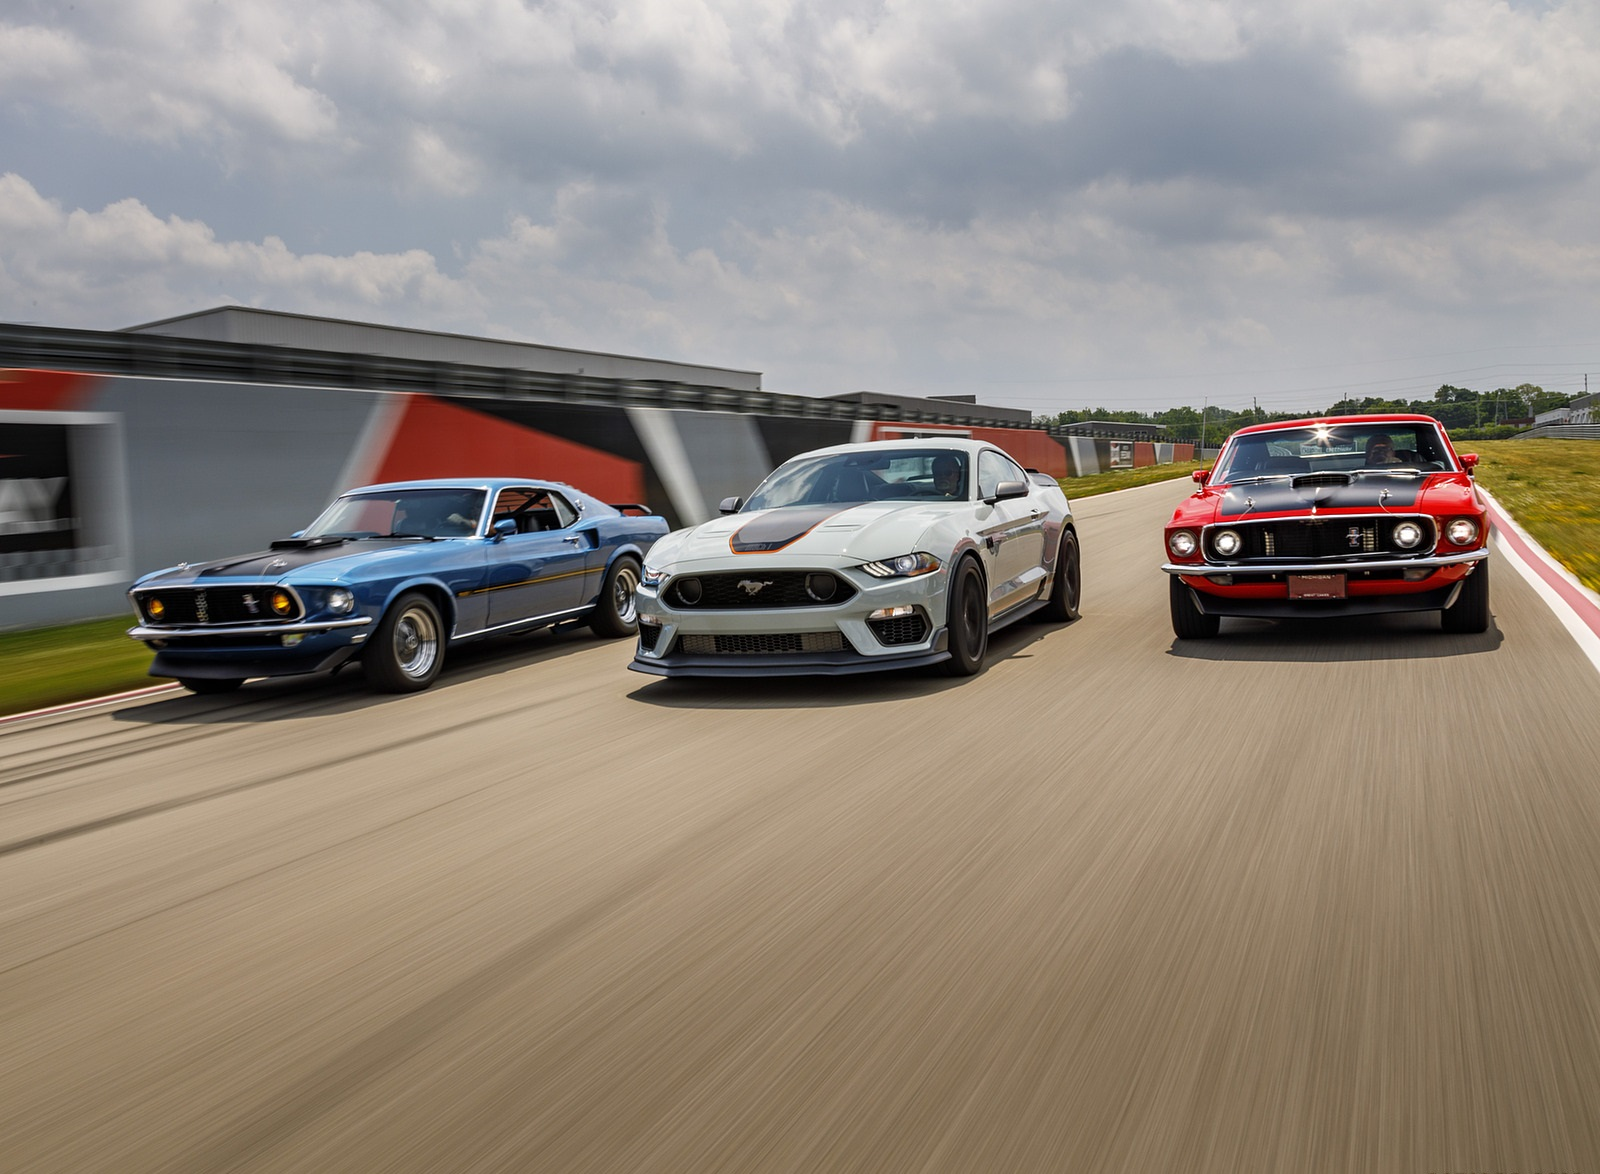 2021 Ford Mustang Mach 1 and 1969 Mach 1 Wallpapers (7)